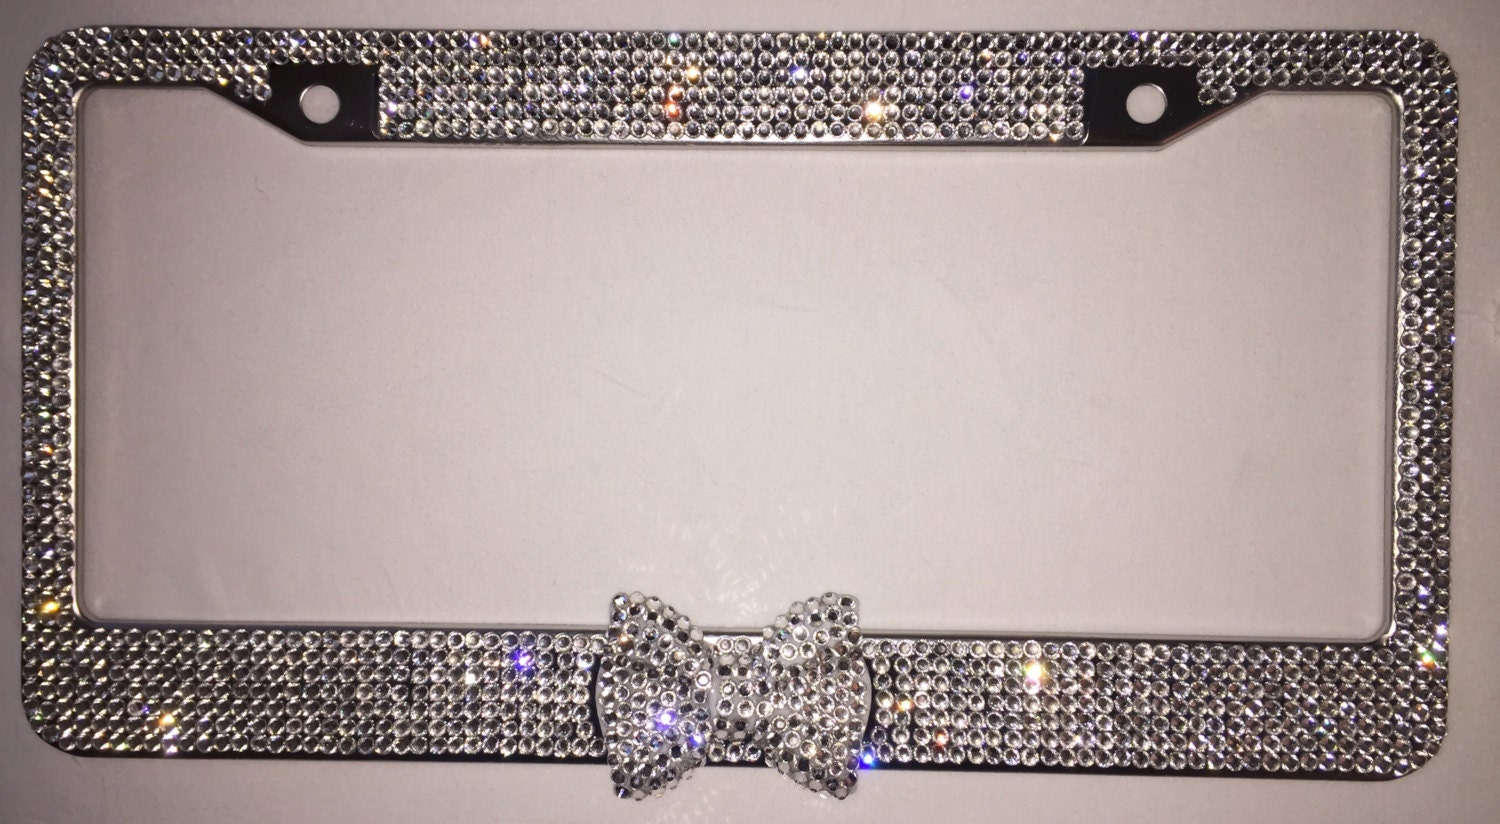 Cool Blingz Thin CRYSTAL License Plate Frame Rhinestone